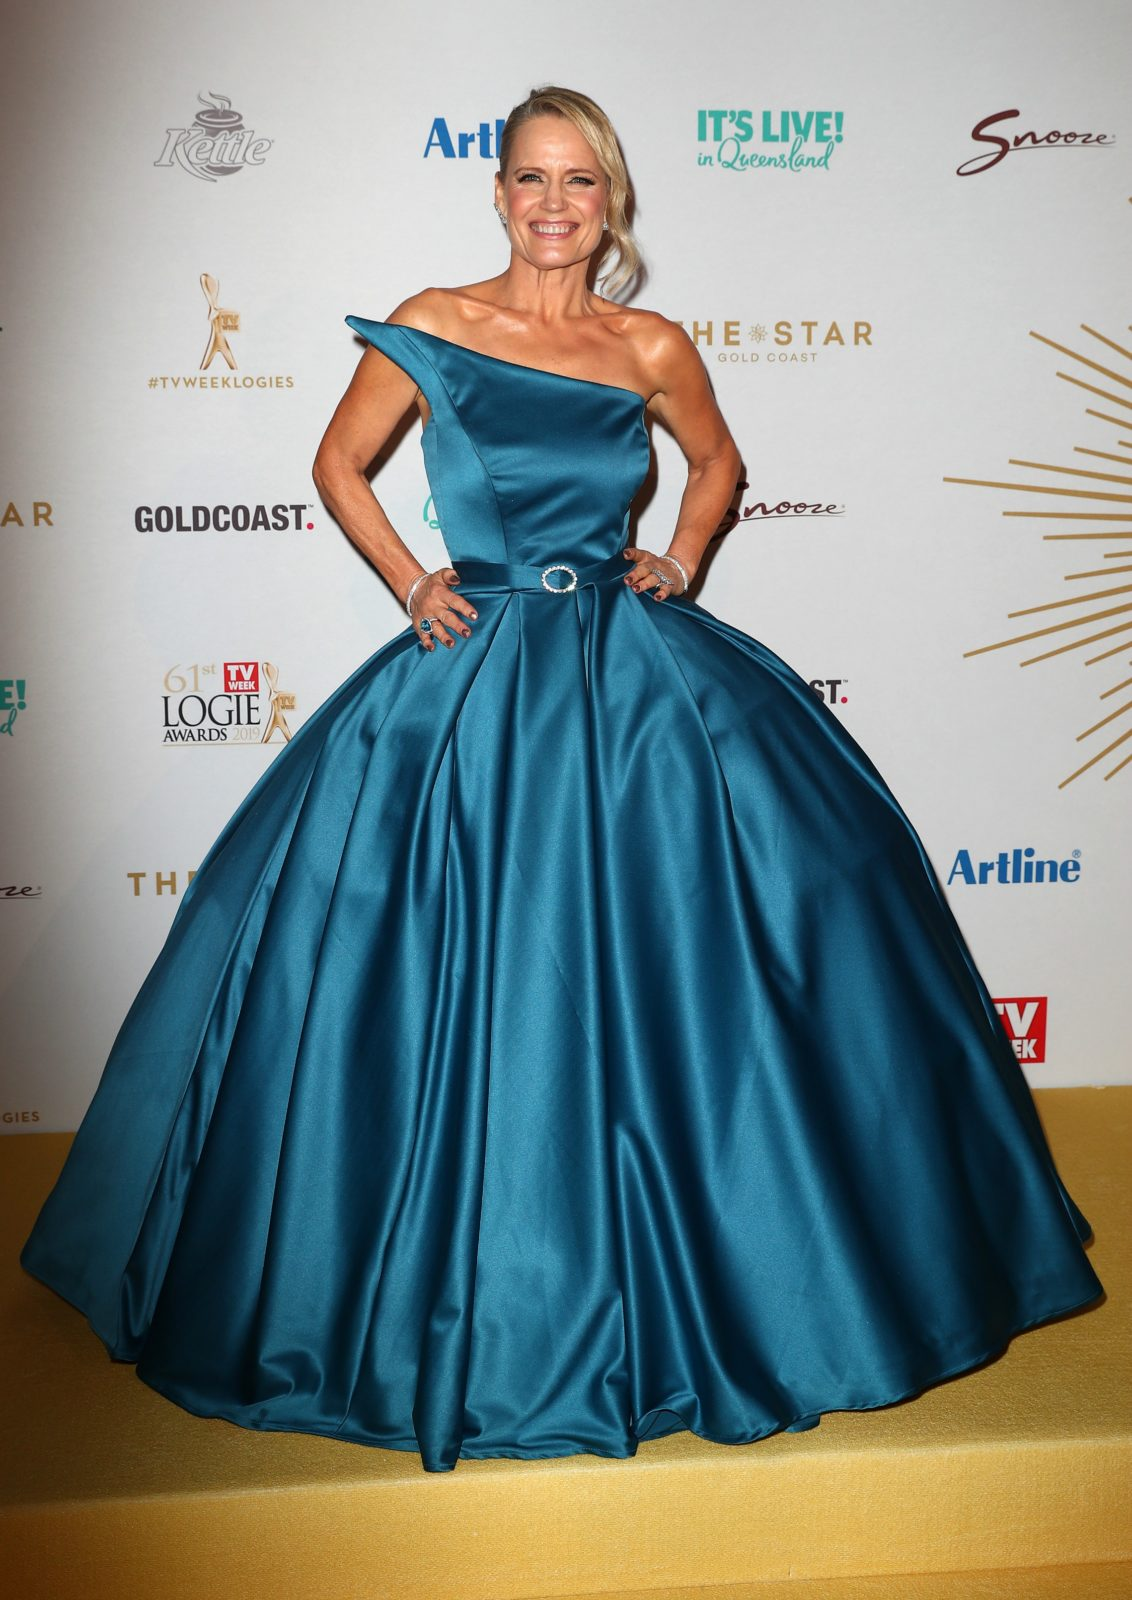 Shaynna Blaze opted for an extravagant blue dress. Source: Getty.